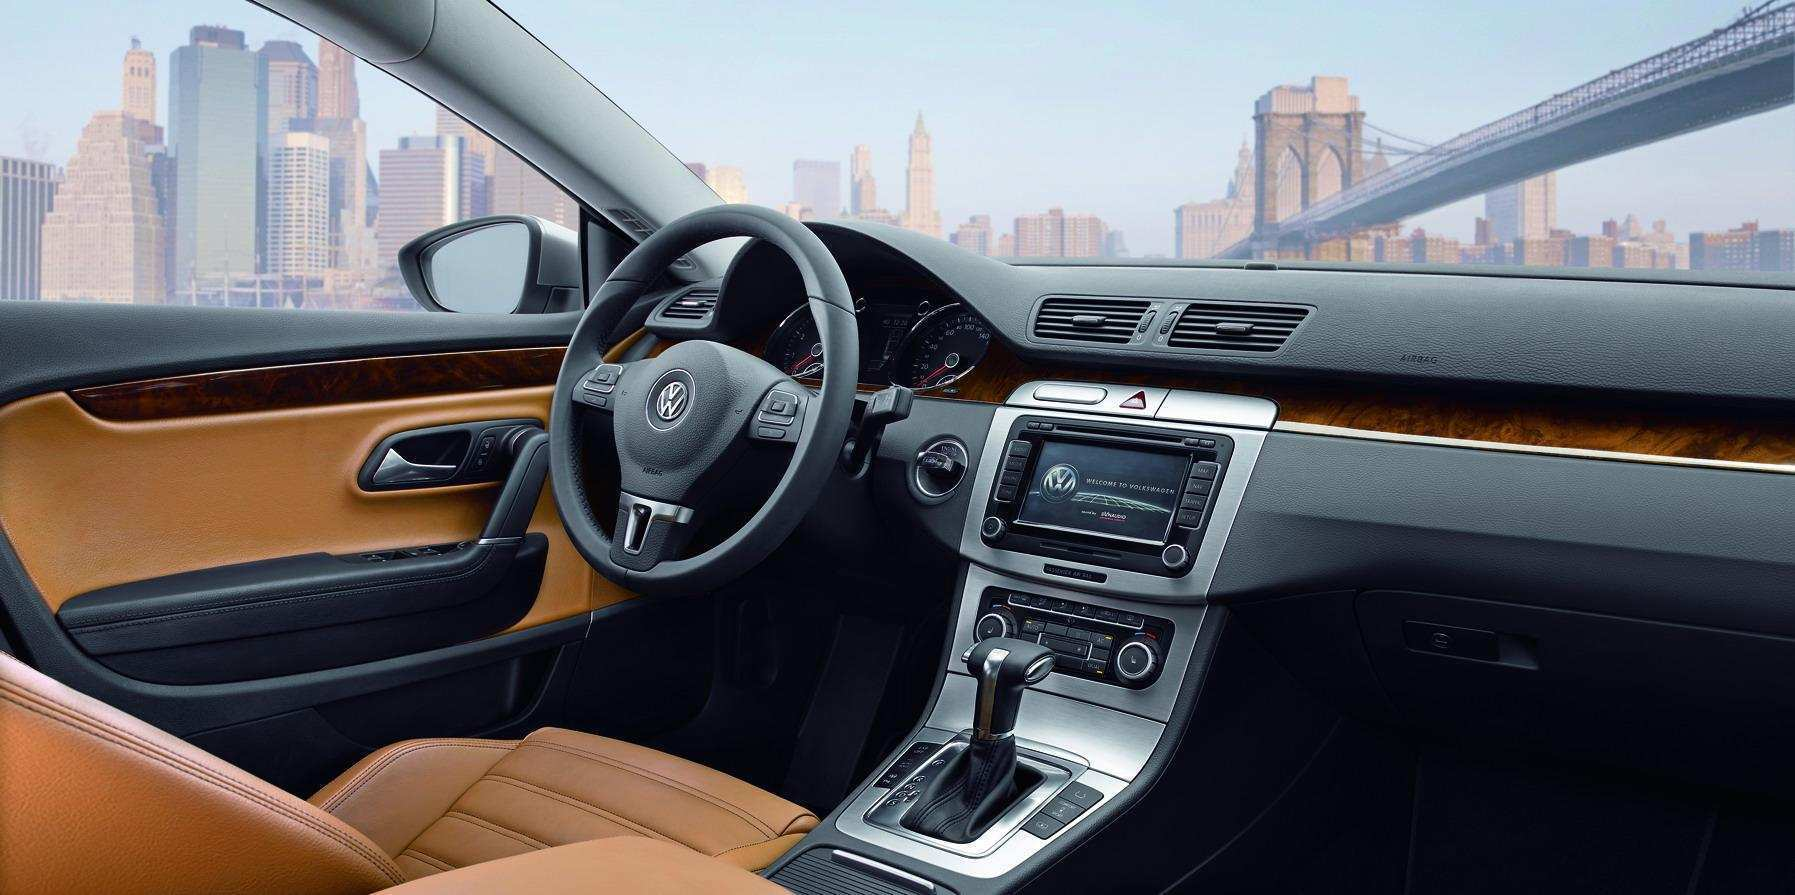 82 All New Next Generation Vw Cc Pictures